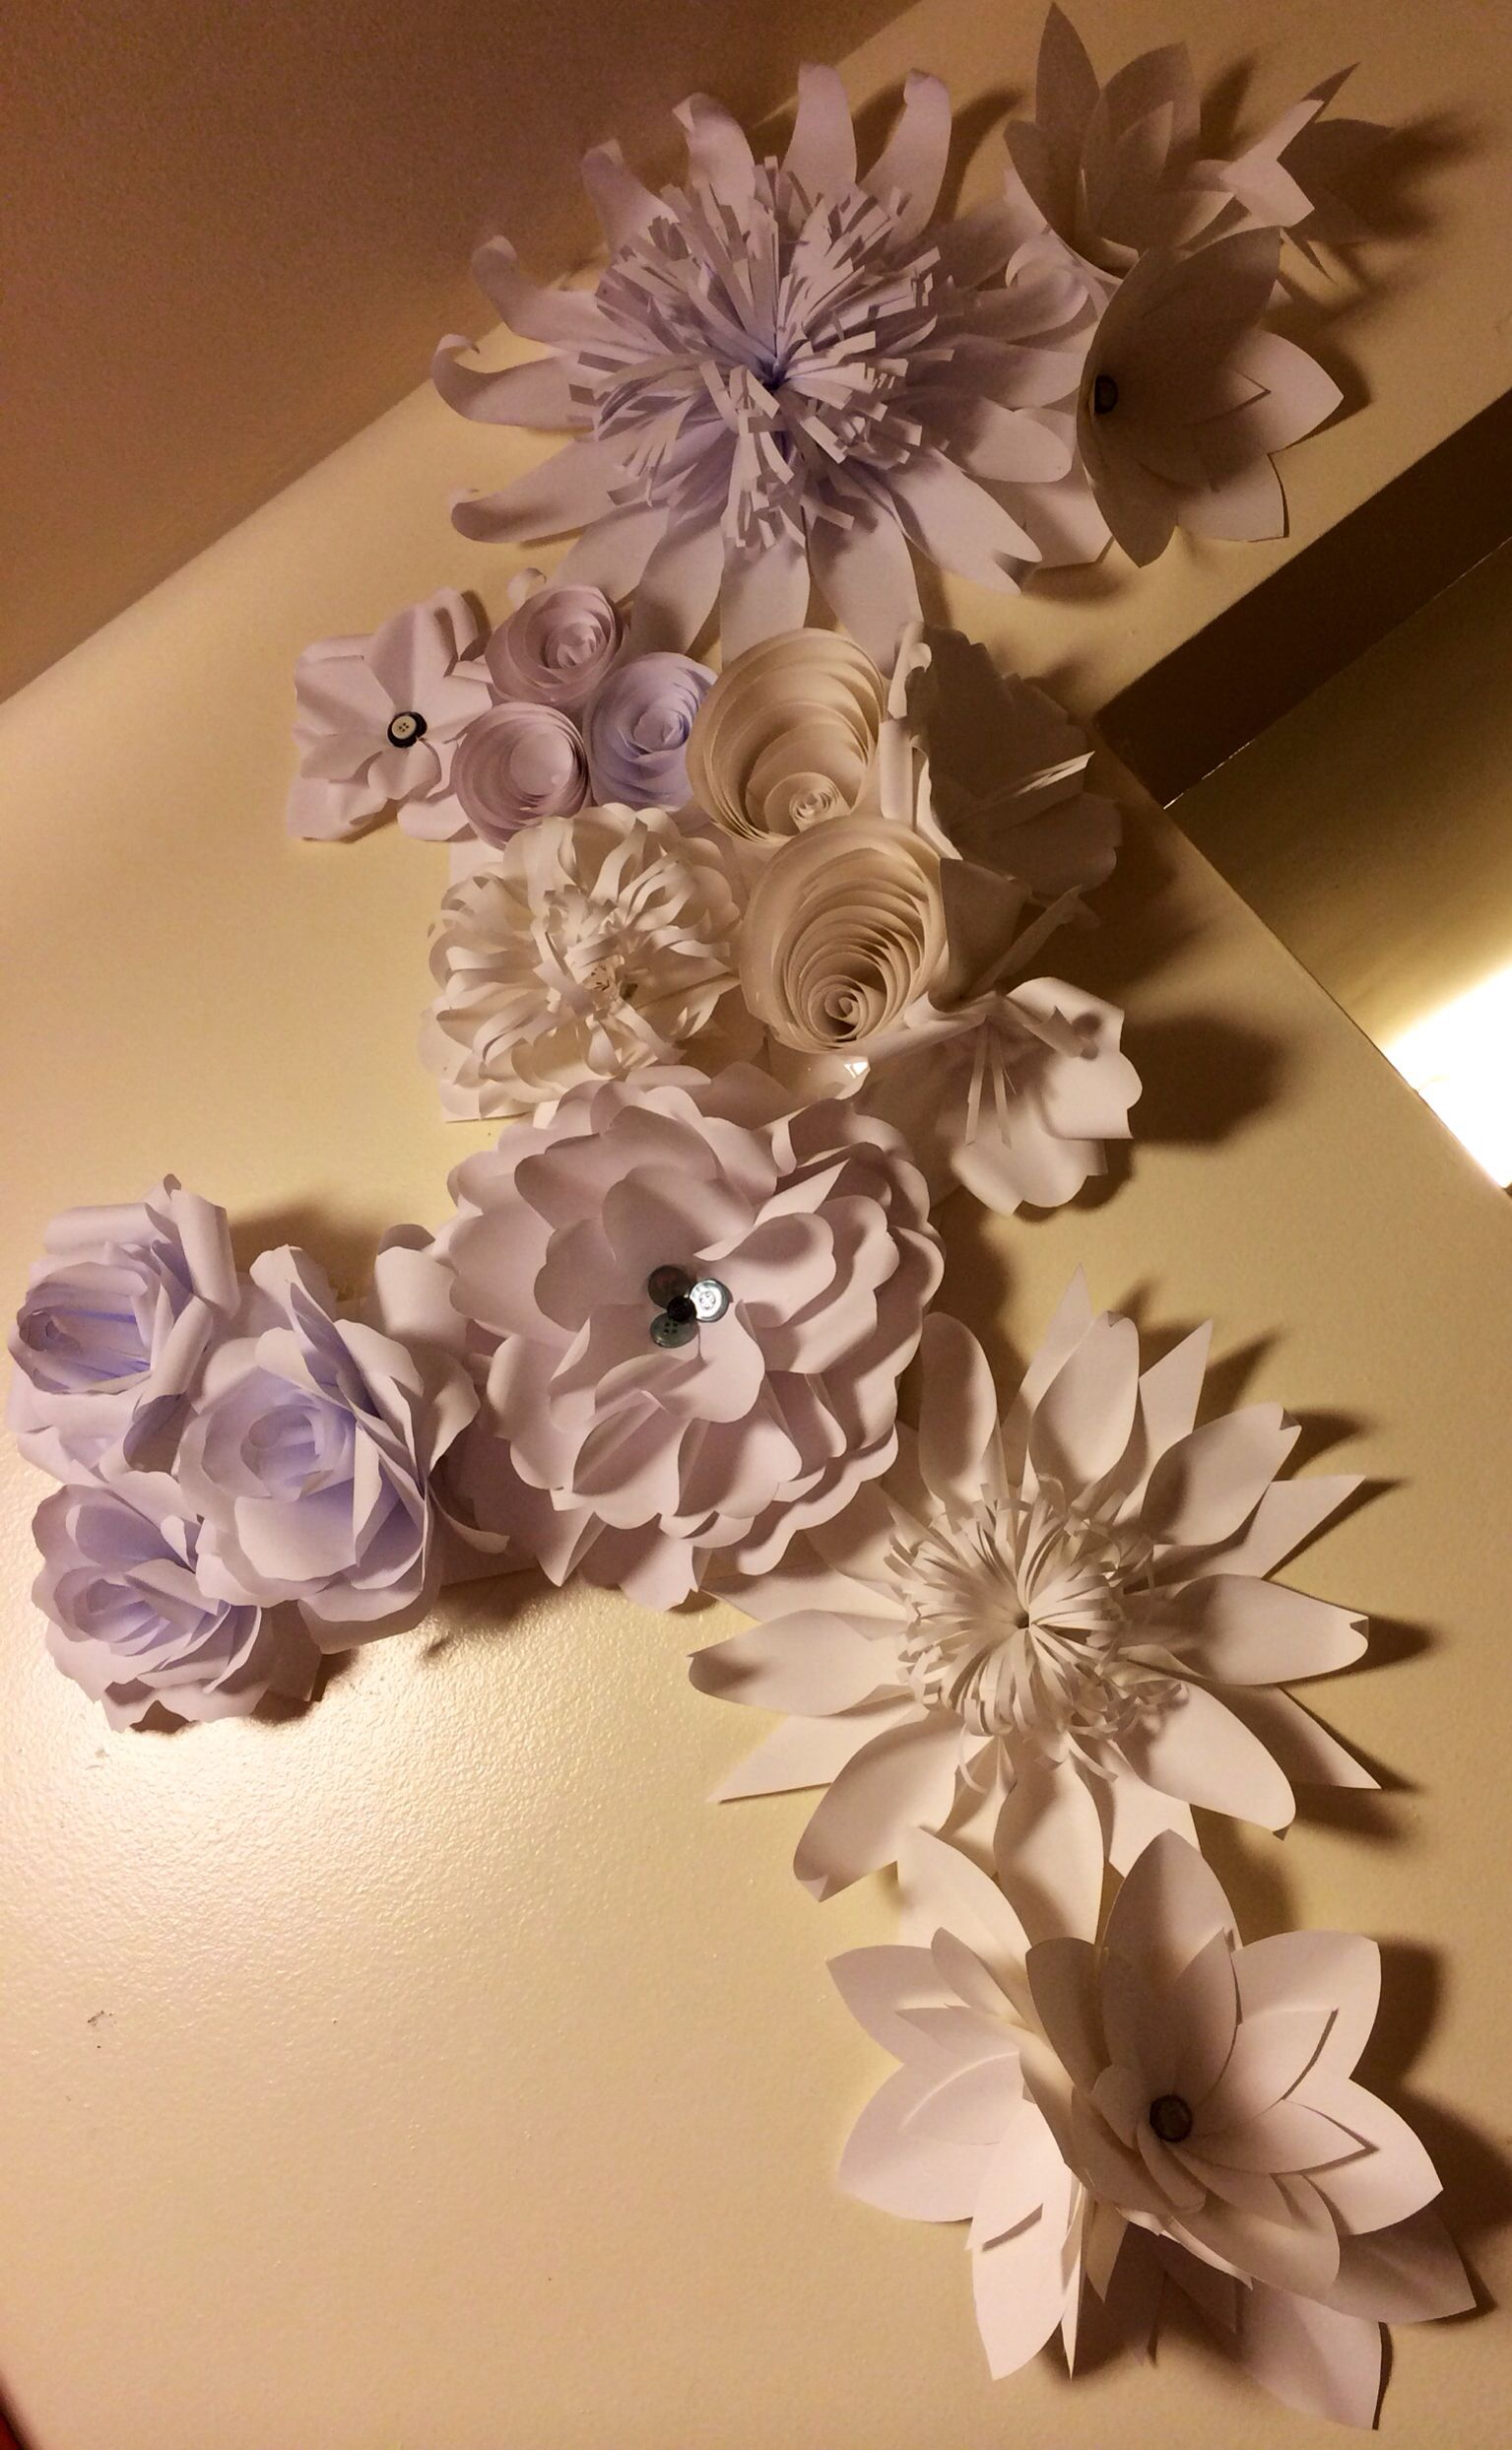 Giant Paper Flowersd Flowers And Flowers The Perfect Thing